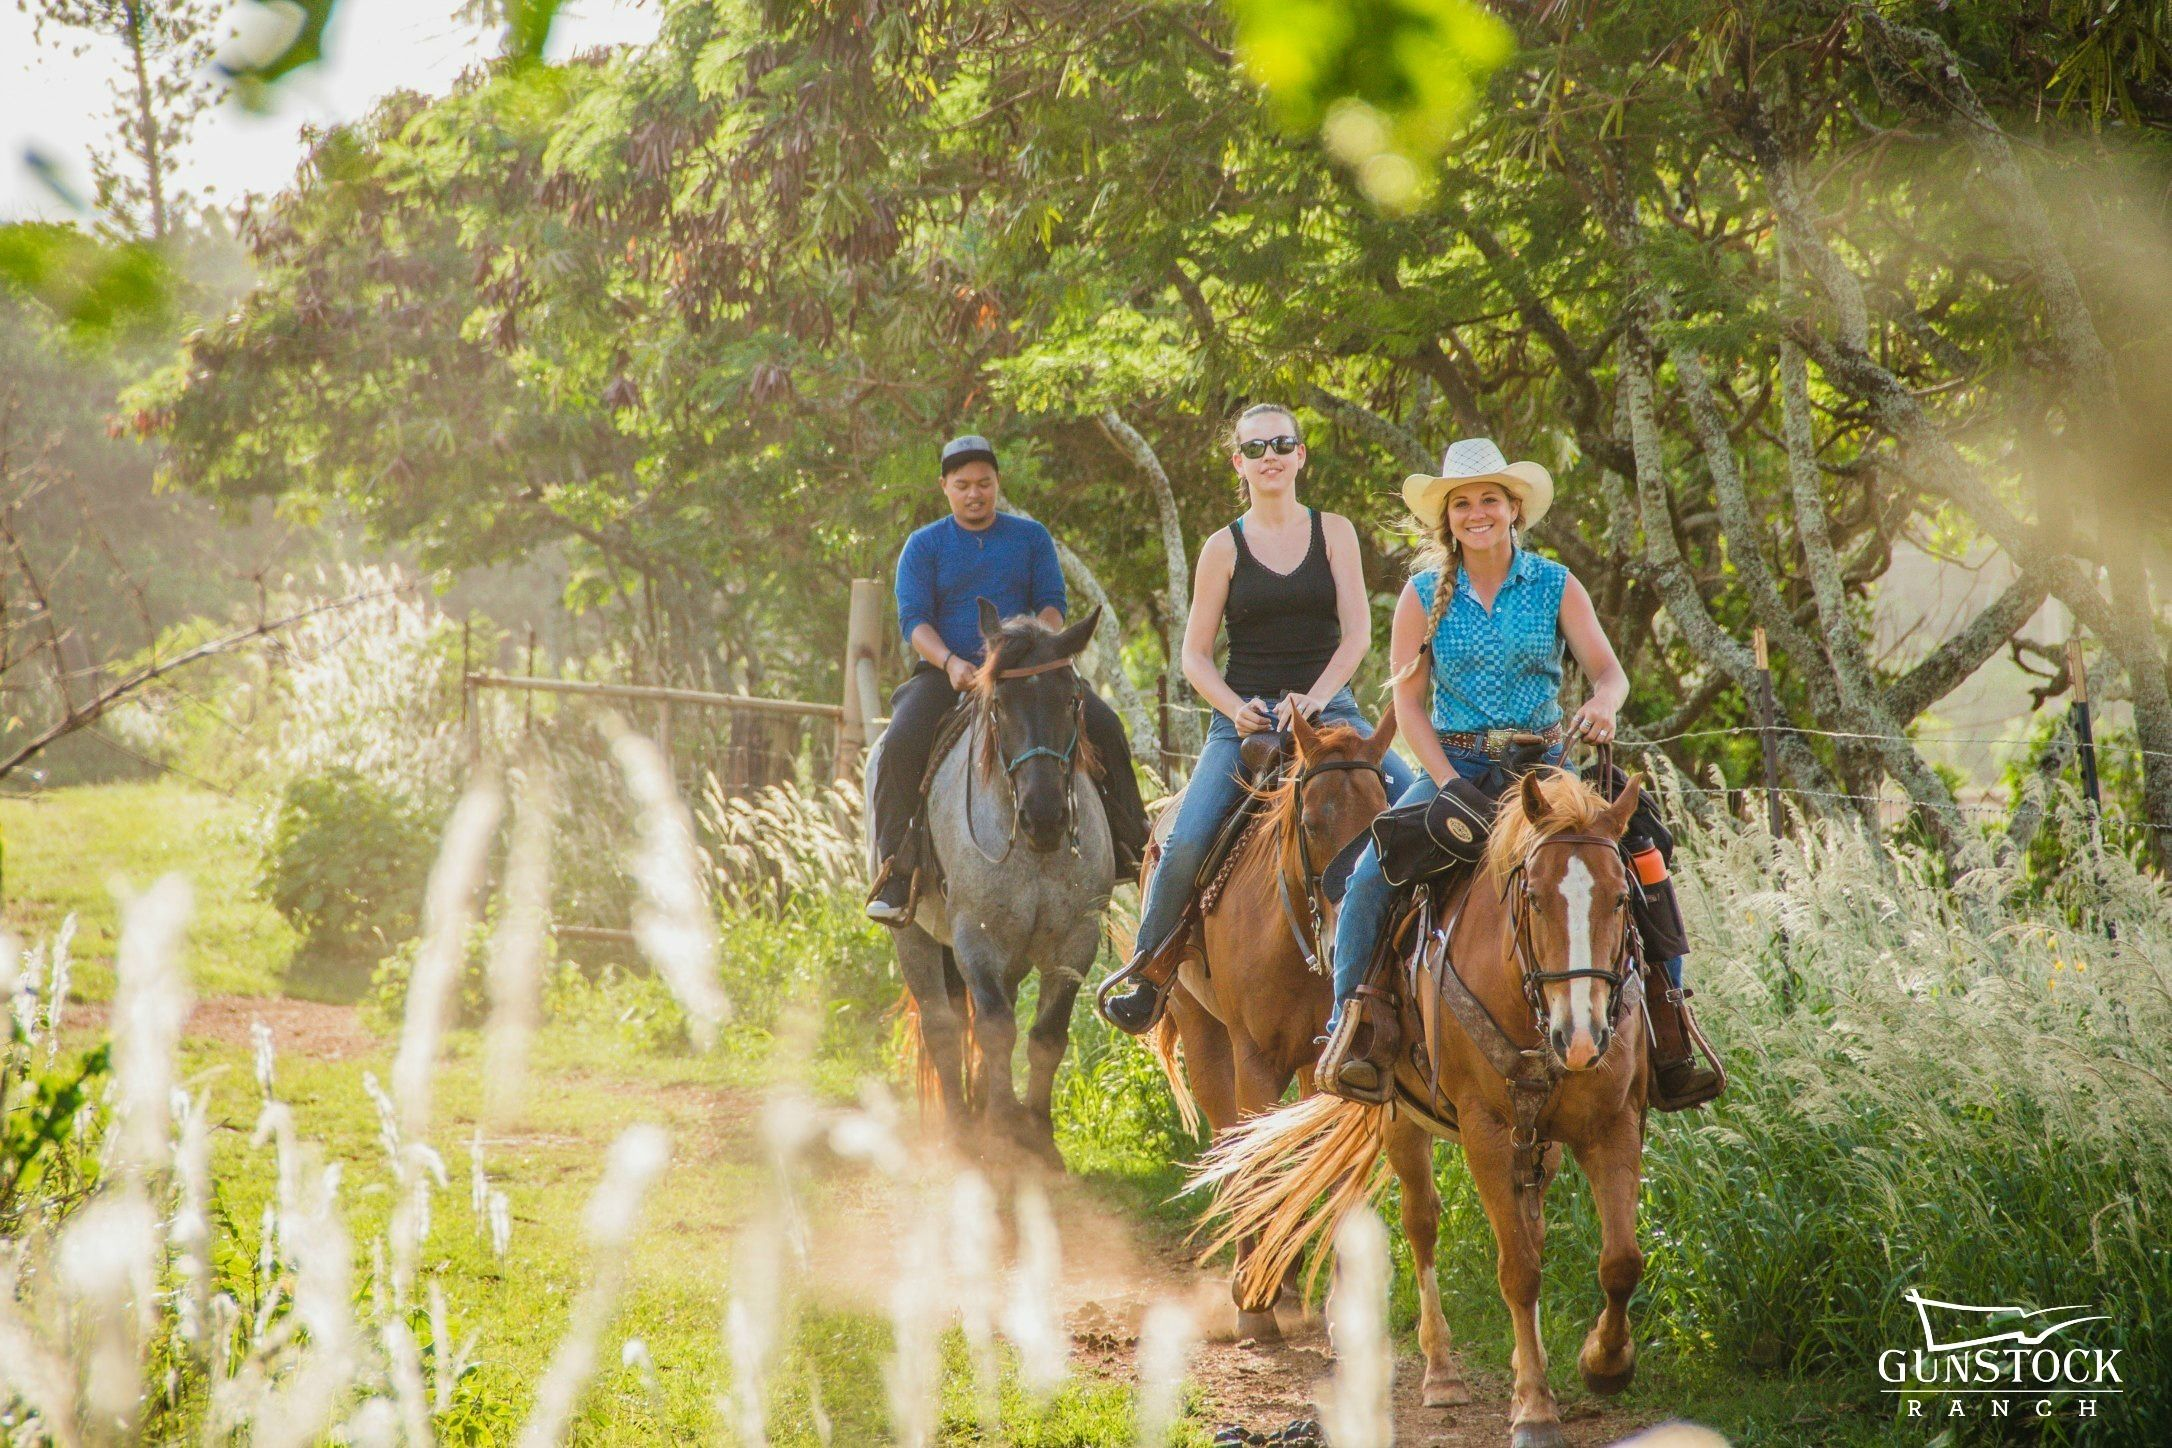 Three people on horseback on a trail at Gunstock Ranch